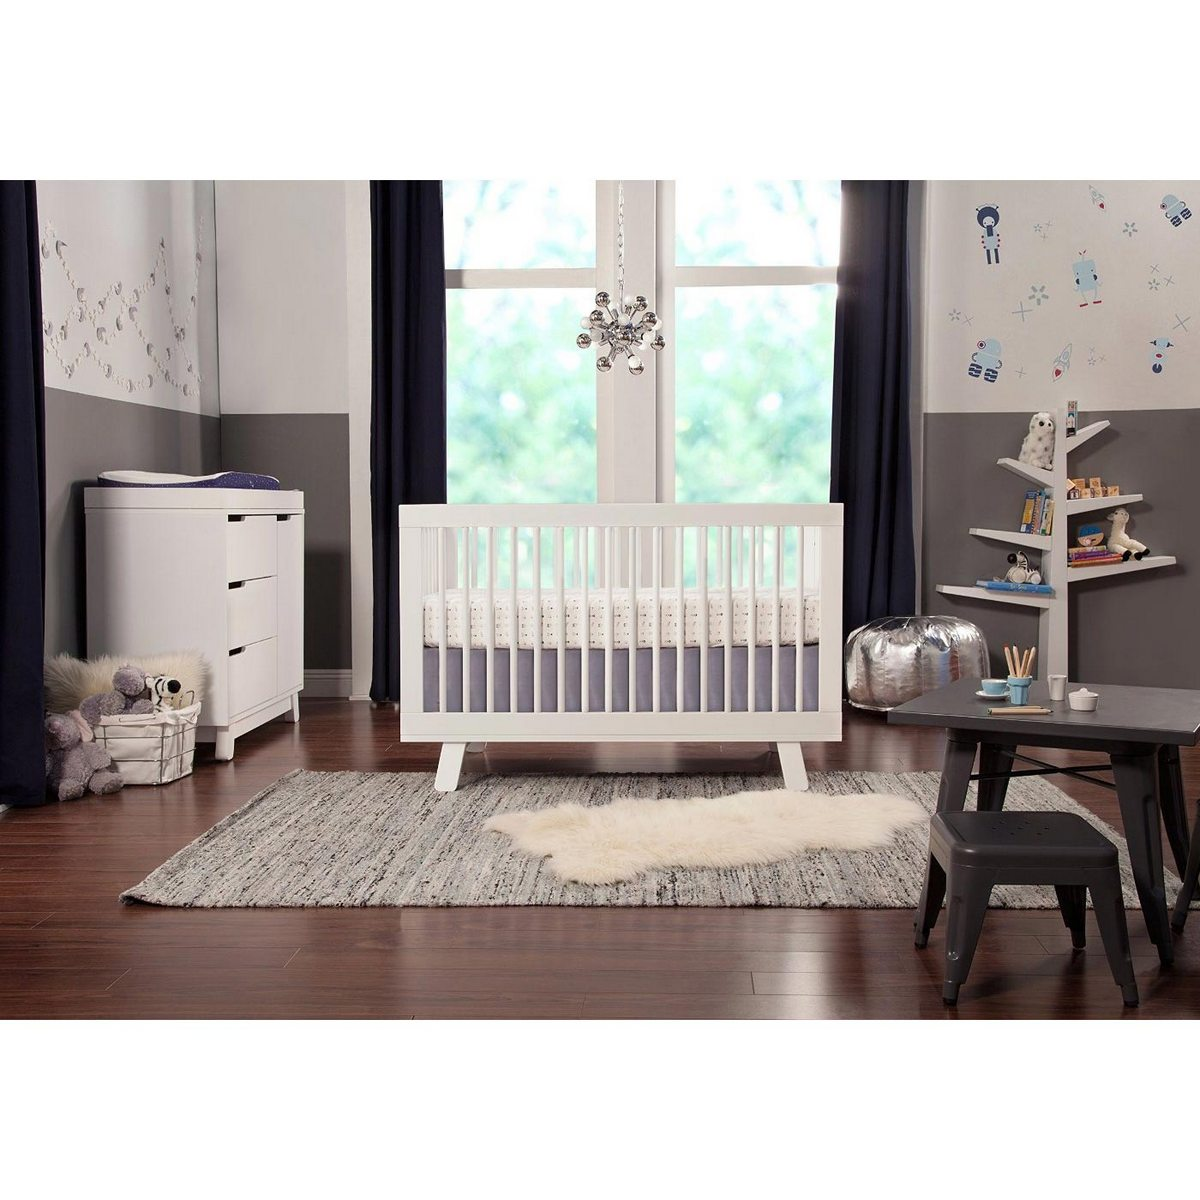 babyletto spruce tree bookcase in white free shipping   -